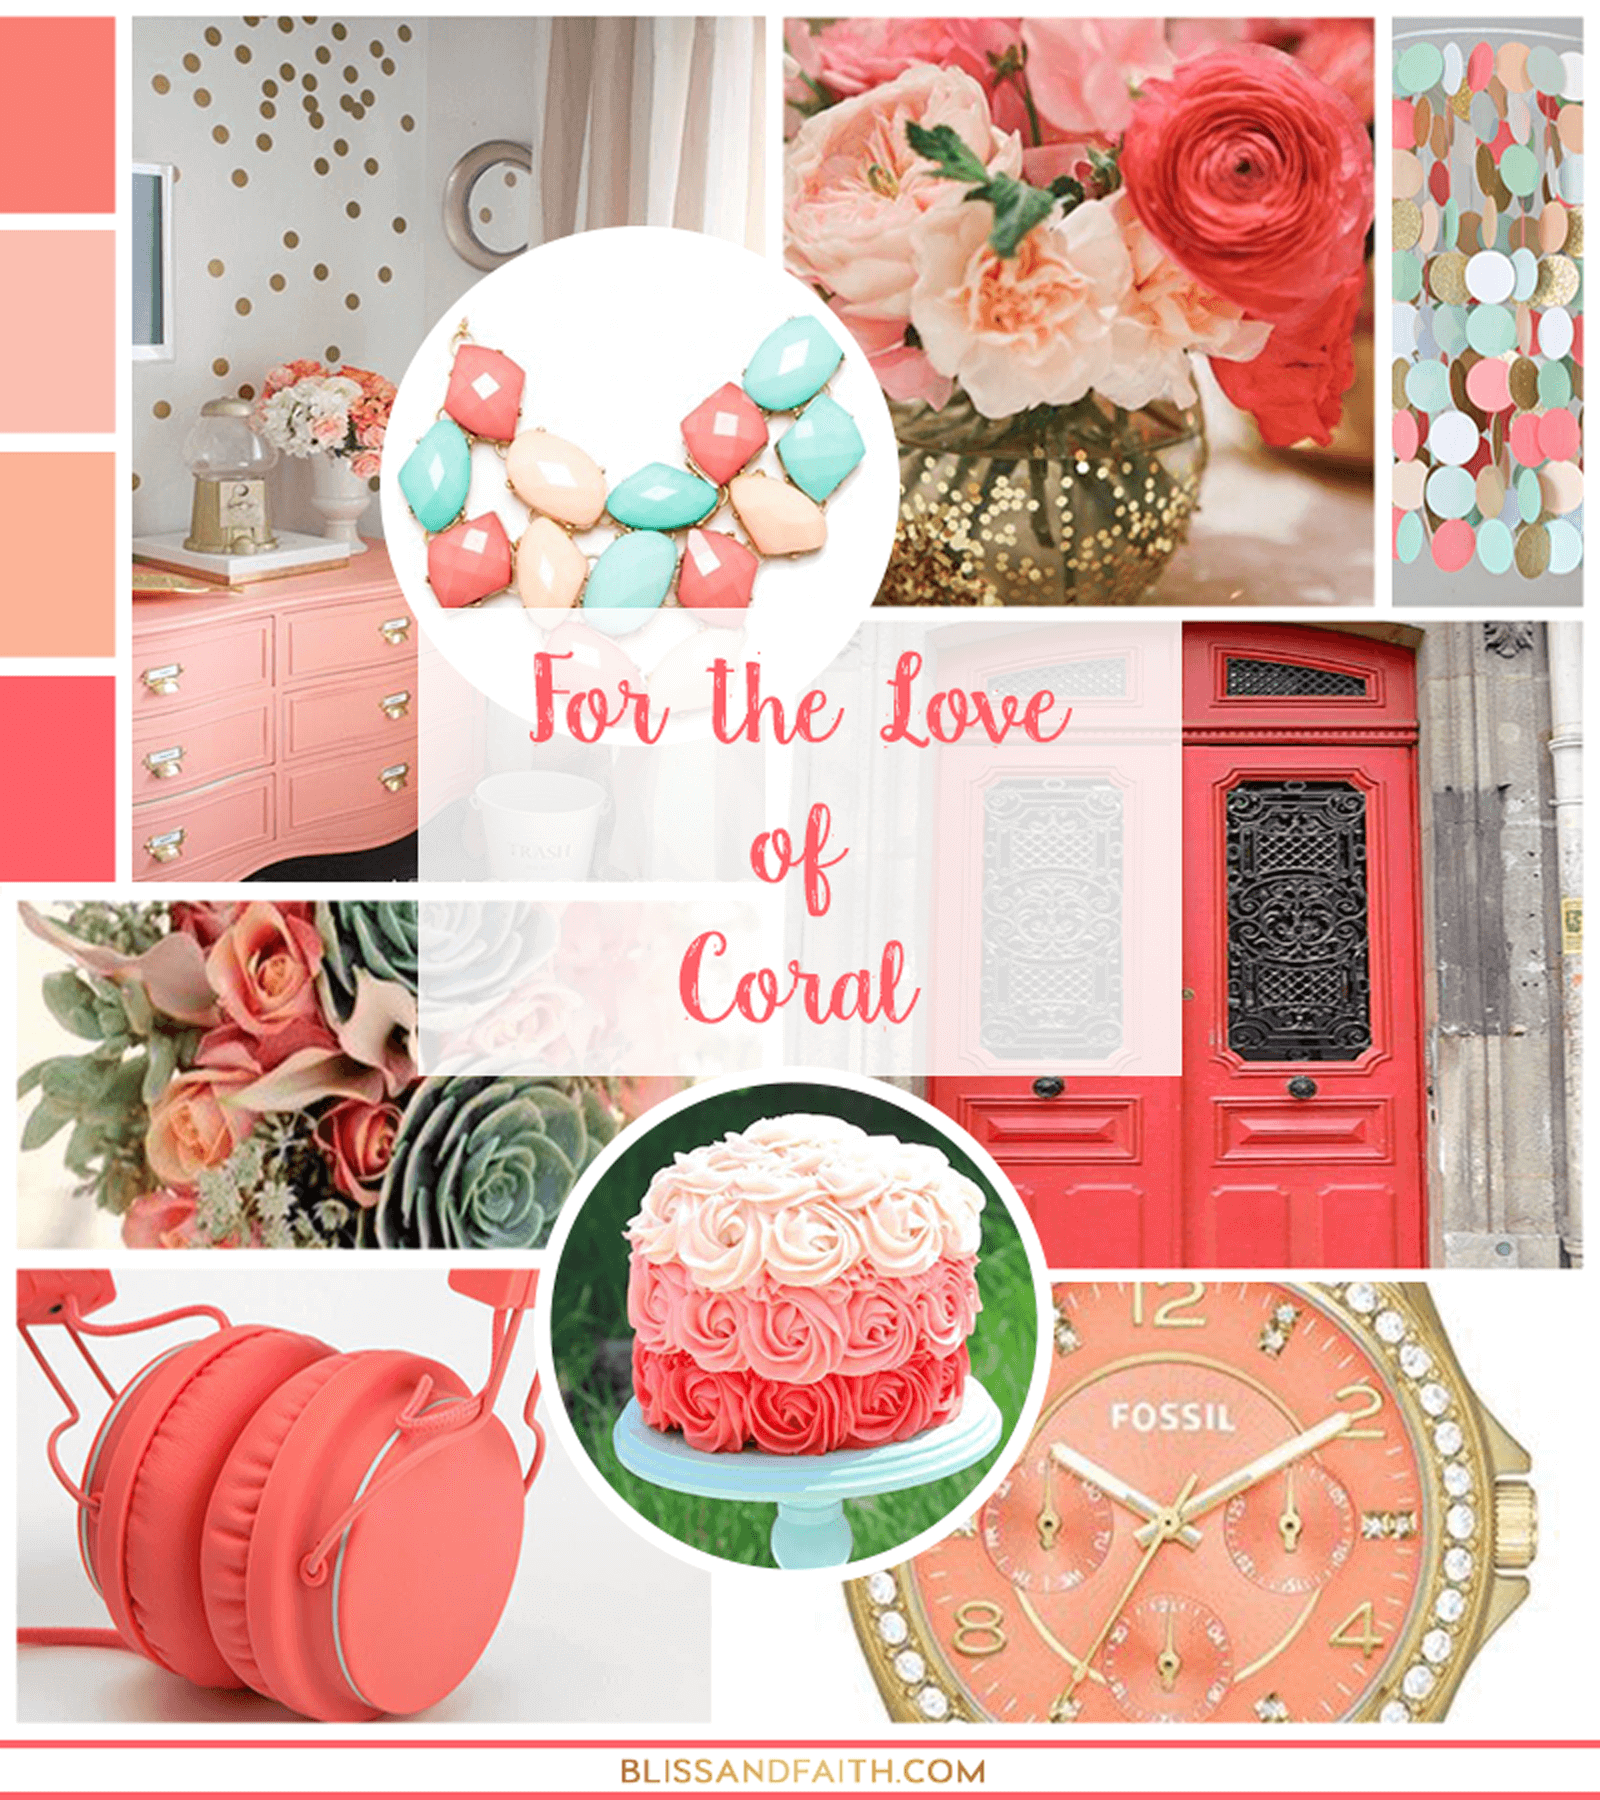 For the Love of Coral | Mood Board | BlissandFaith.com